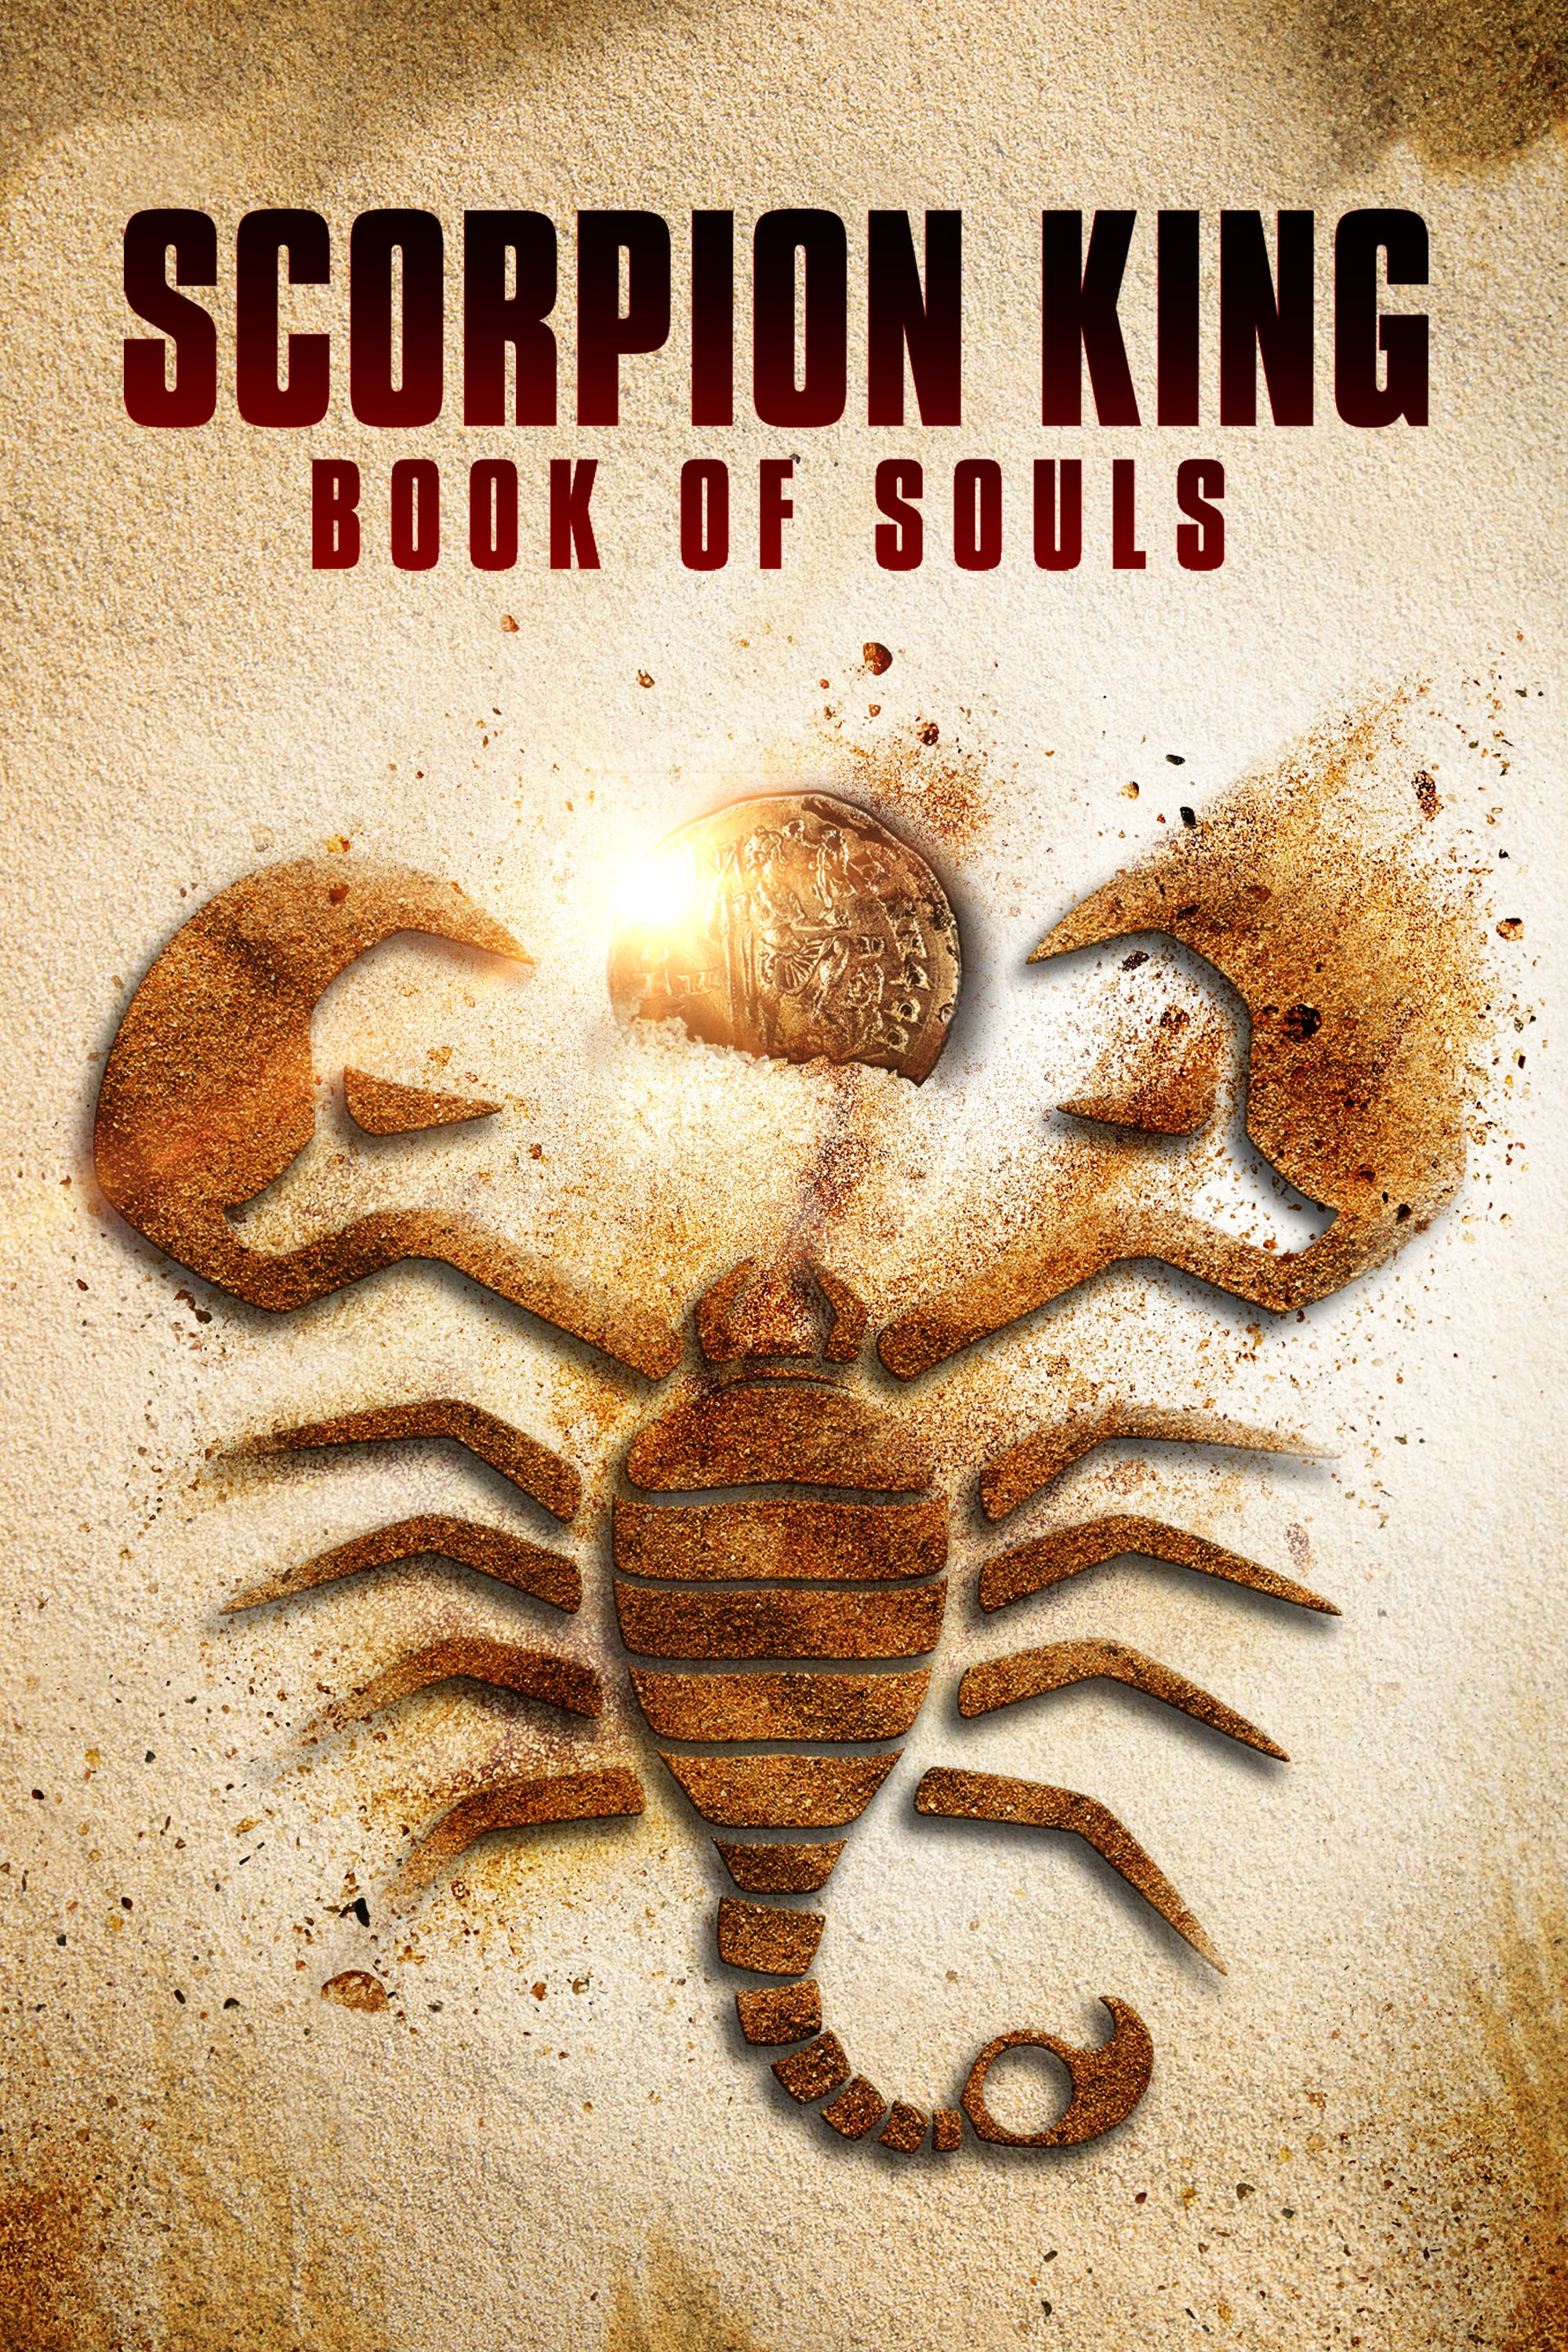 The Scorpion King: Book of Souls (2018) - IMDb